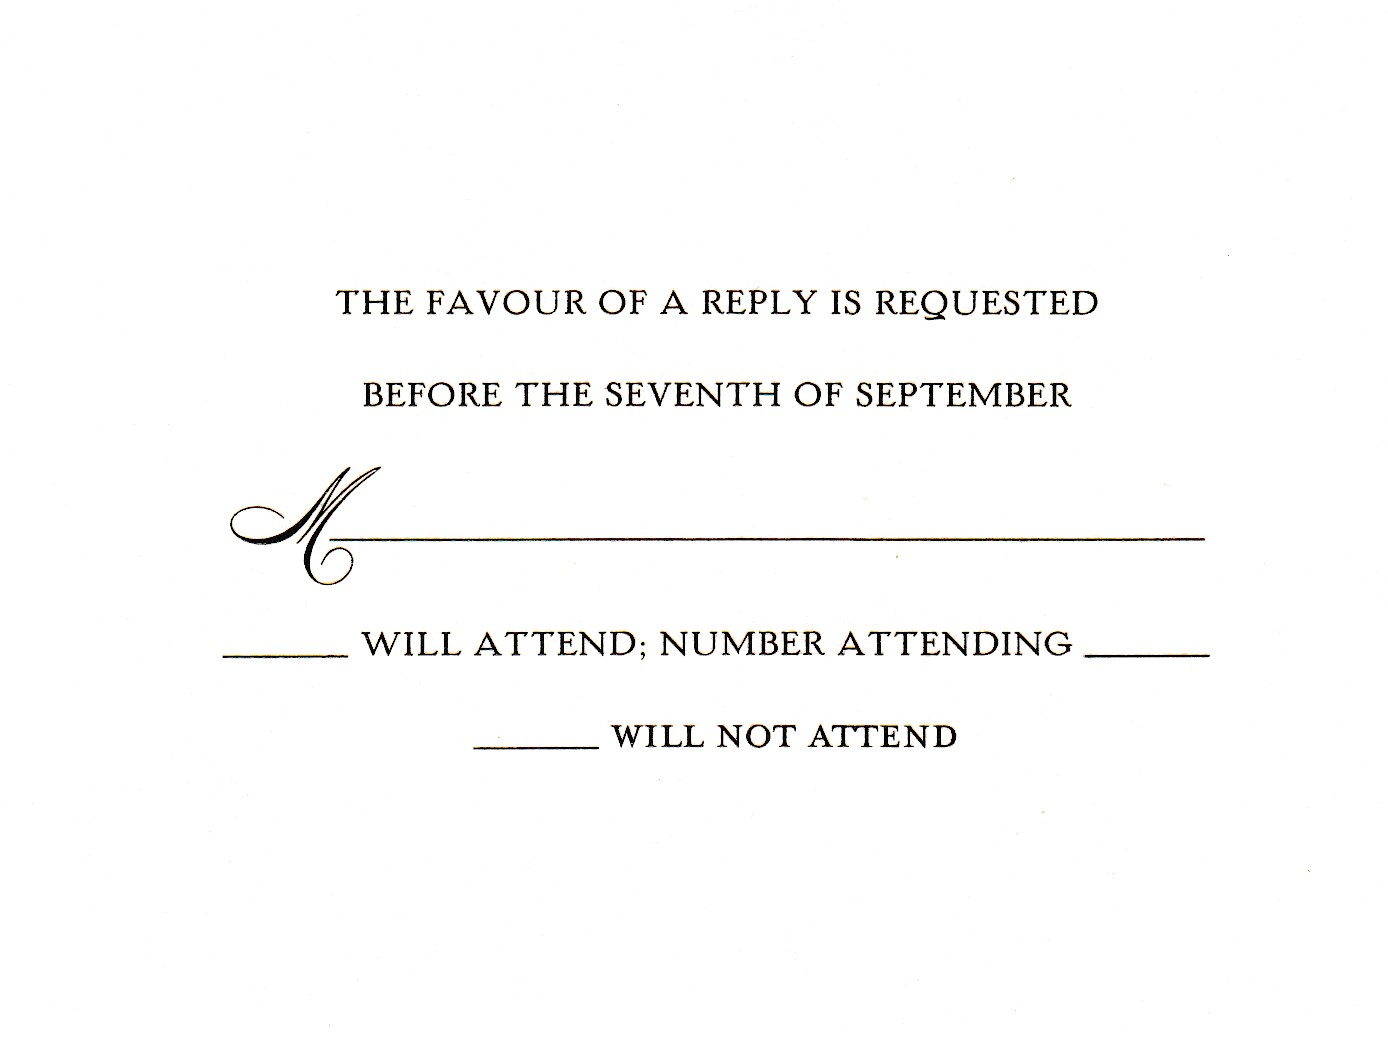 This text is on our order forms, the most clear and concise text for getting a count on guests.  TS 6 & 93  Black  Sample 8